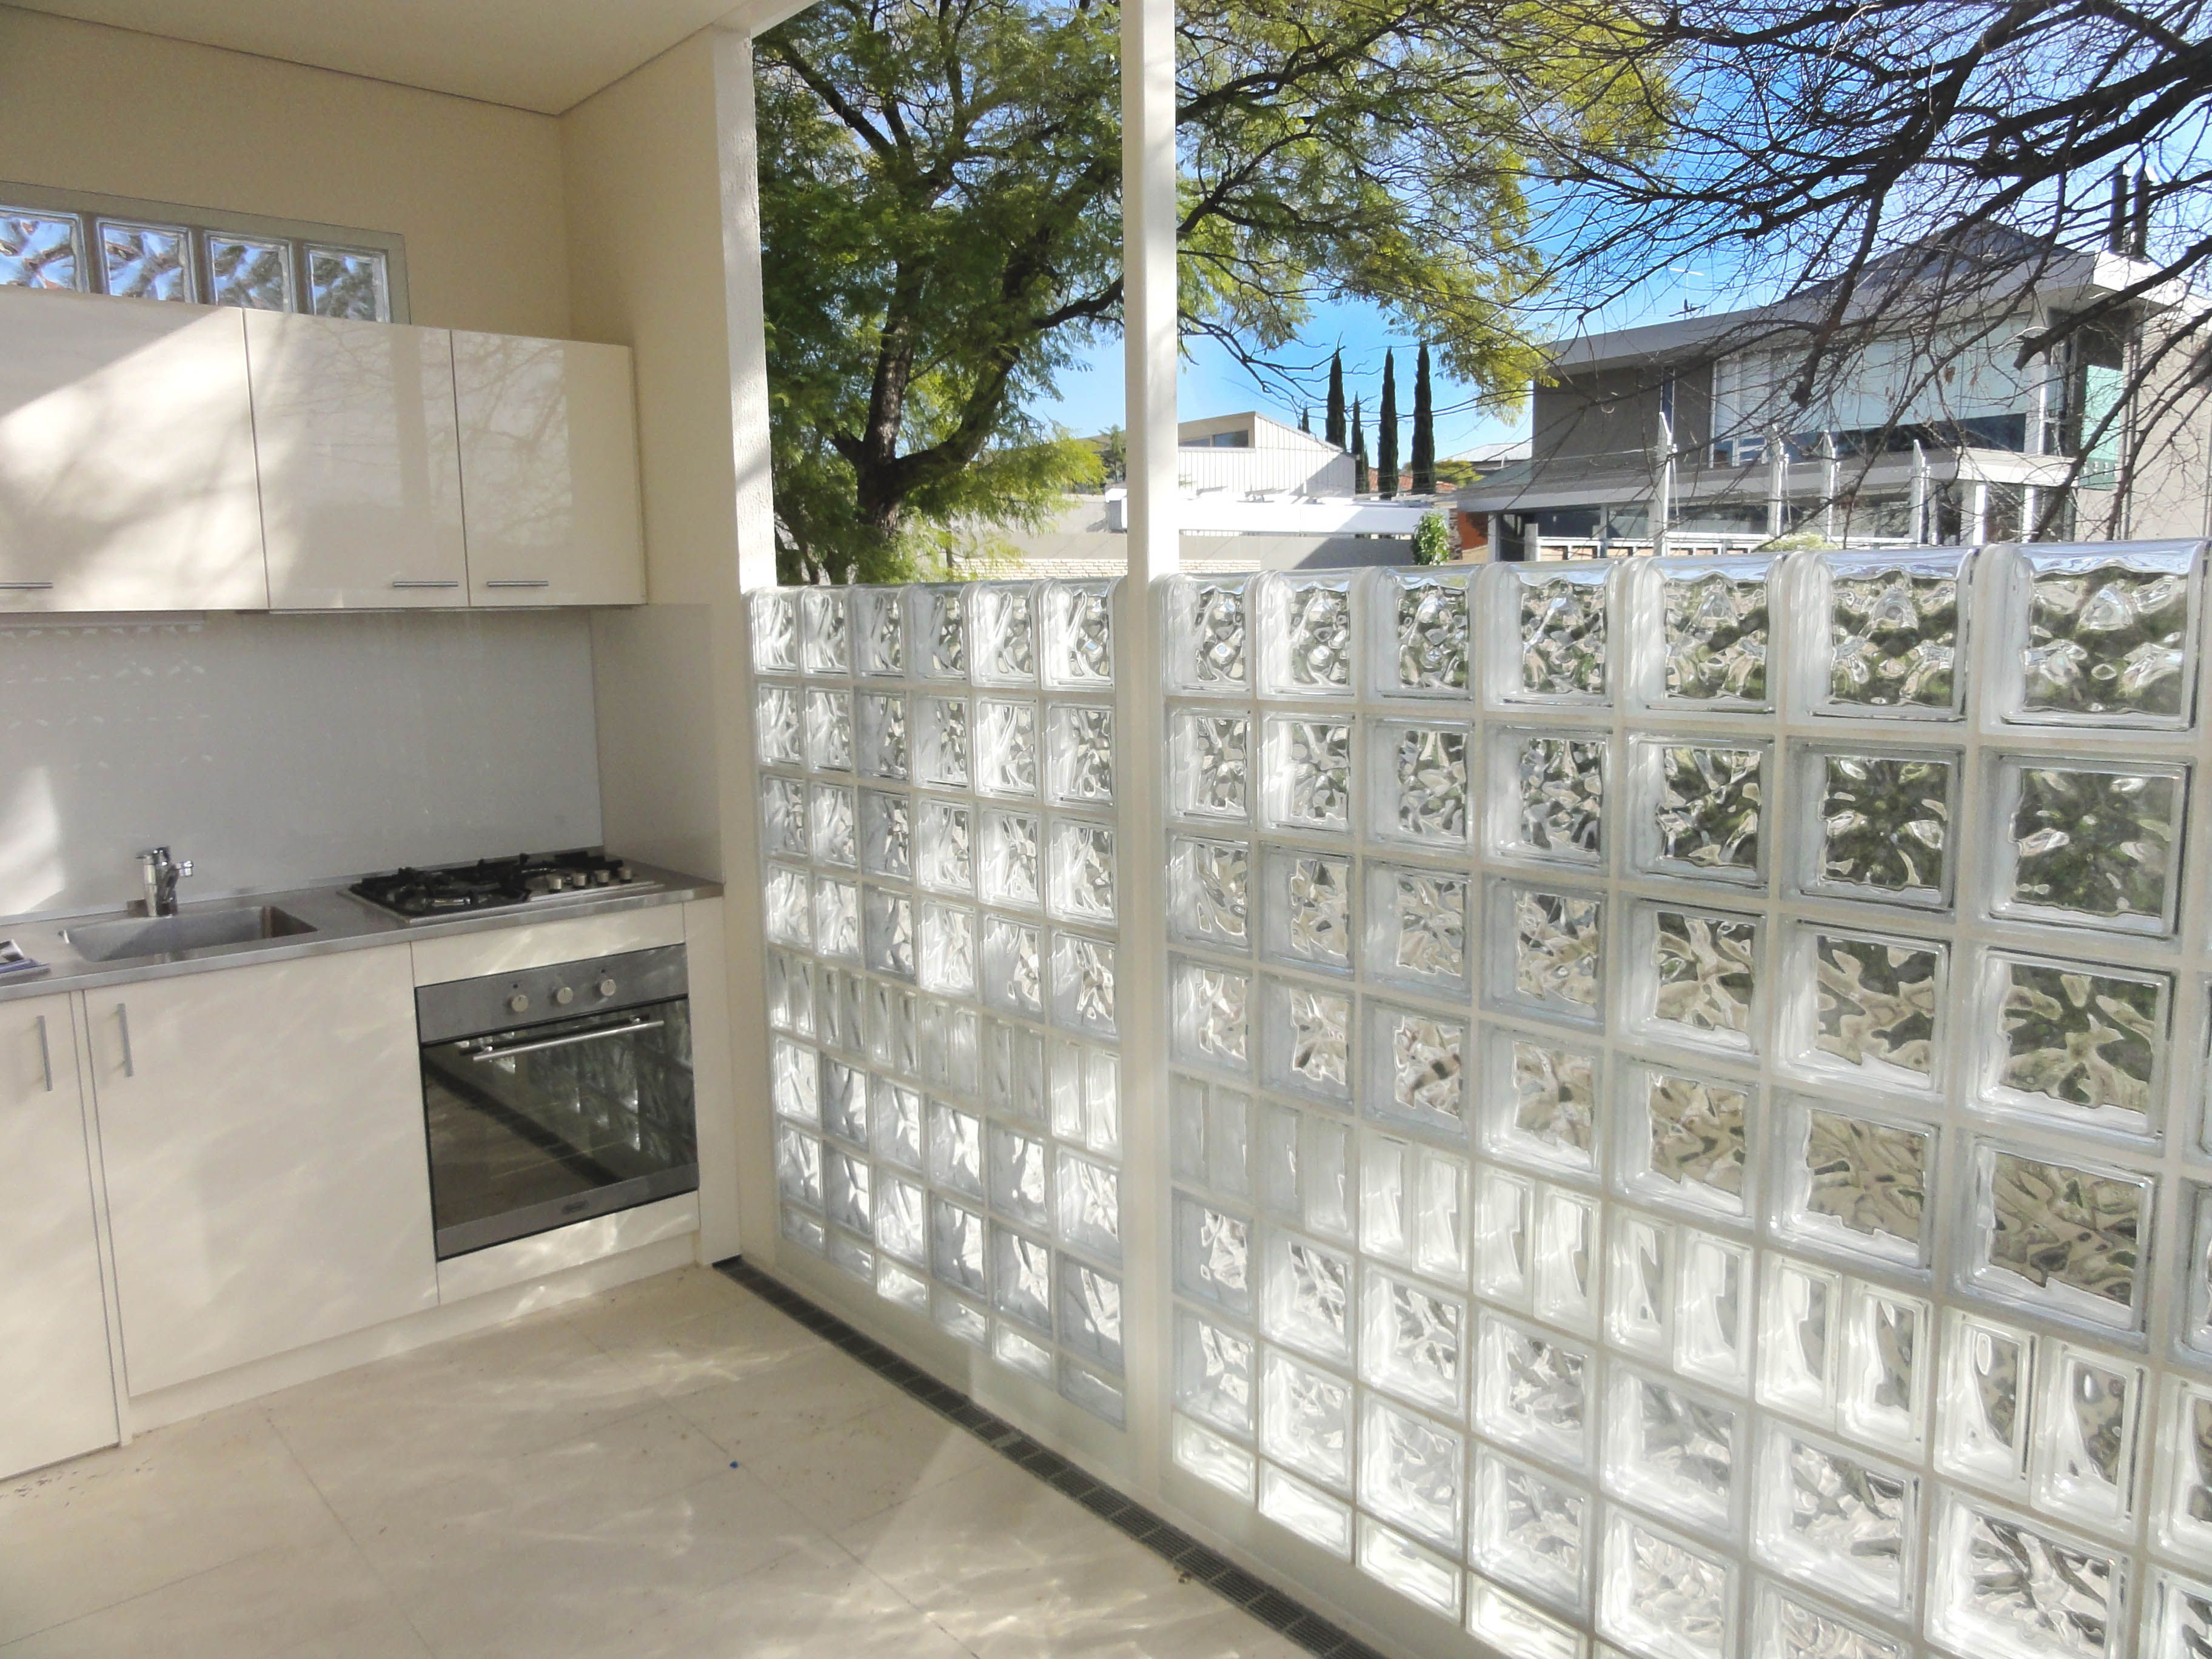 Outdoor Upstairs Patio Area With Outdoor Kitchenette And Glass Block Screen  Wall For Privacy